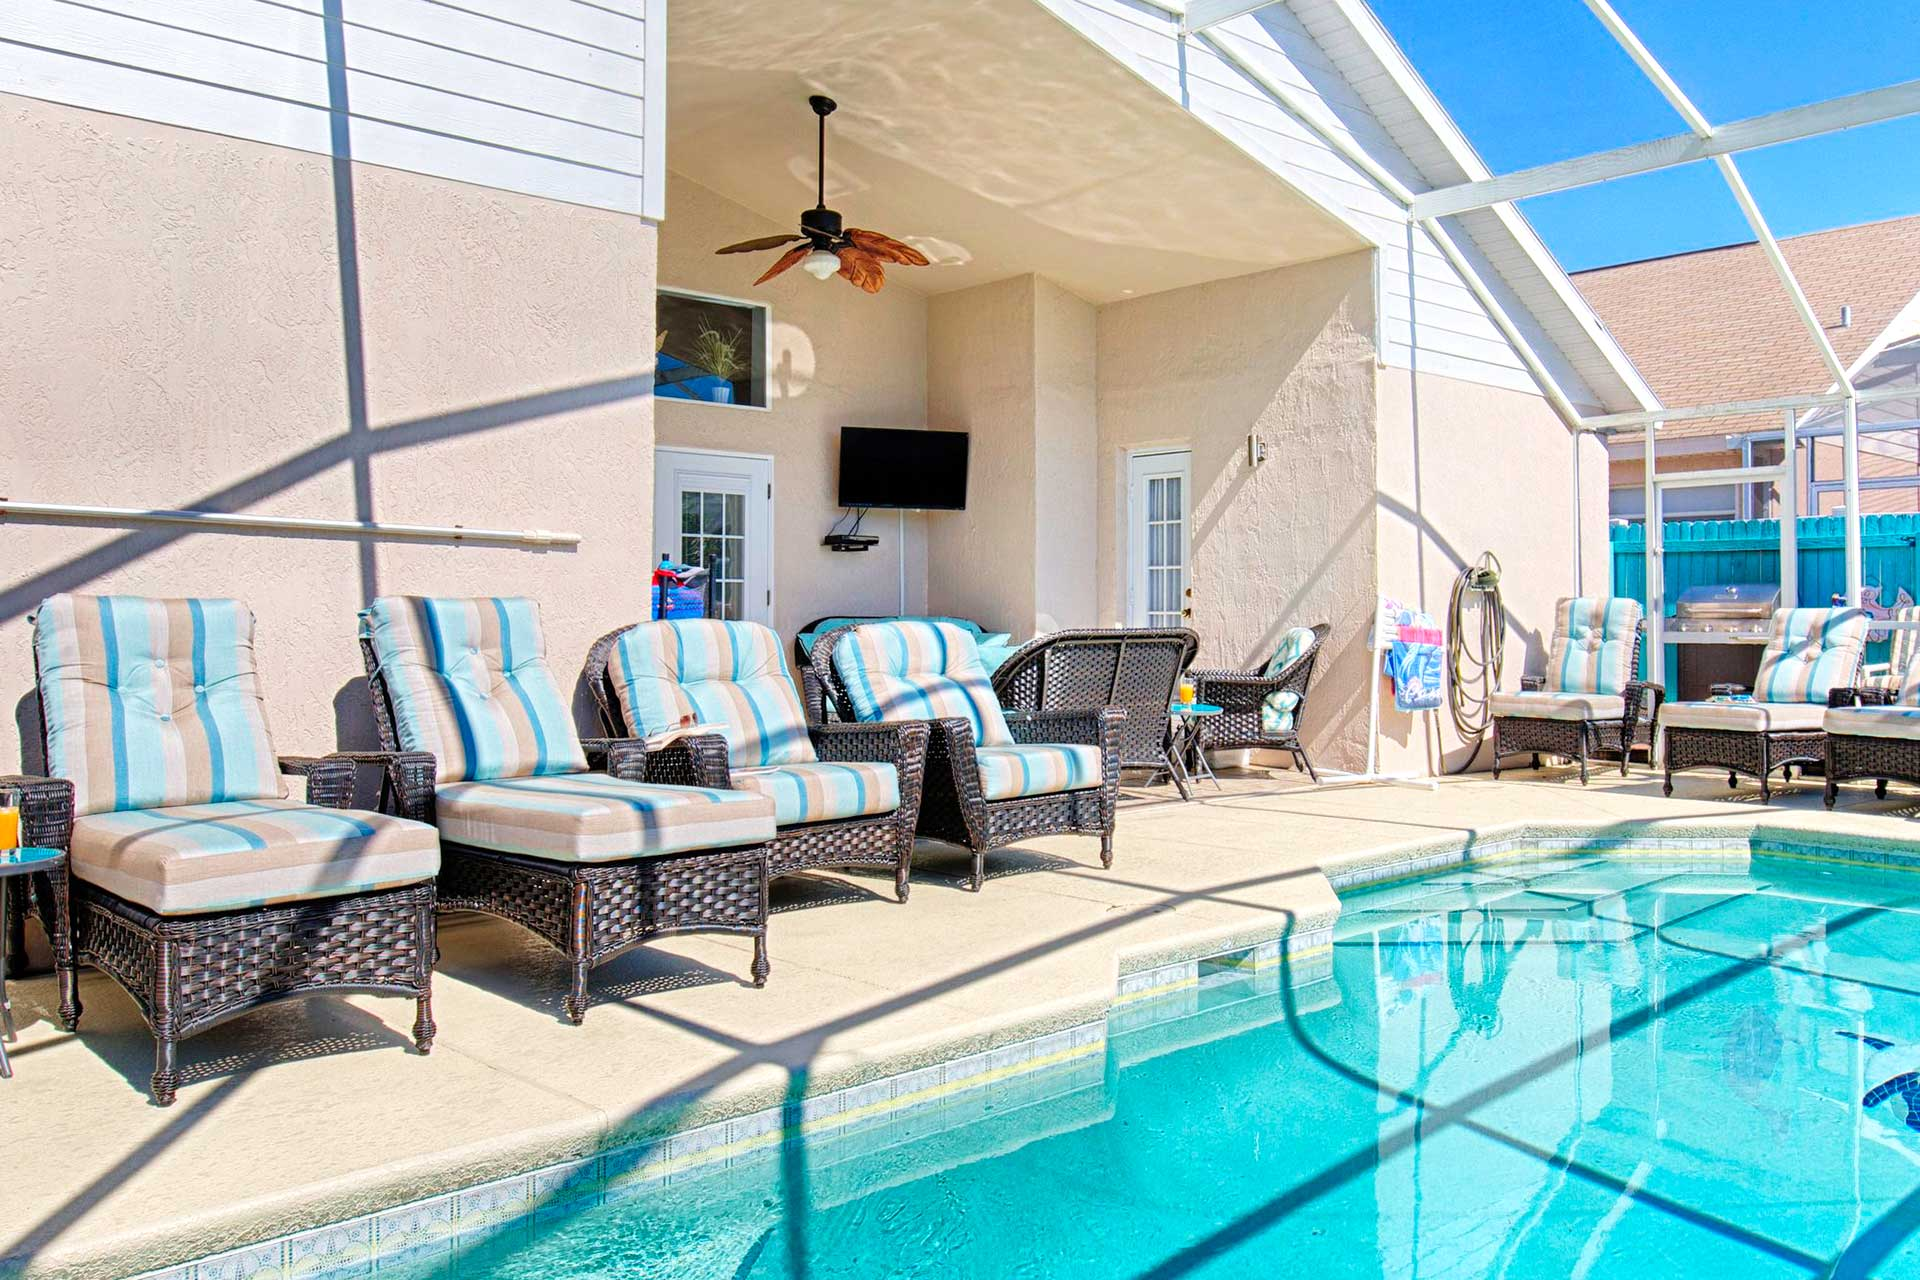 Rattan Pool Furniture Orlando Rental Serendipity at Indian Creek